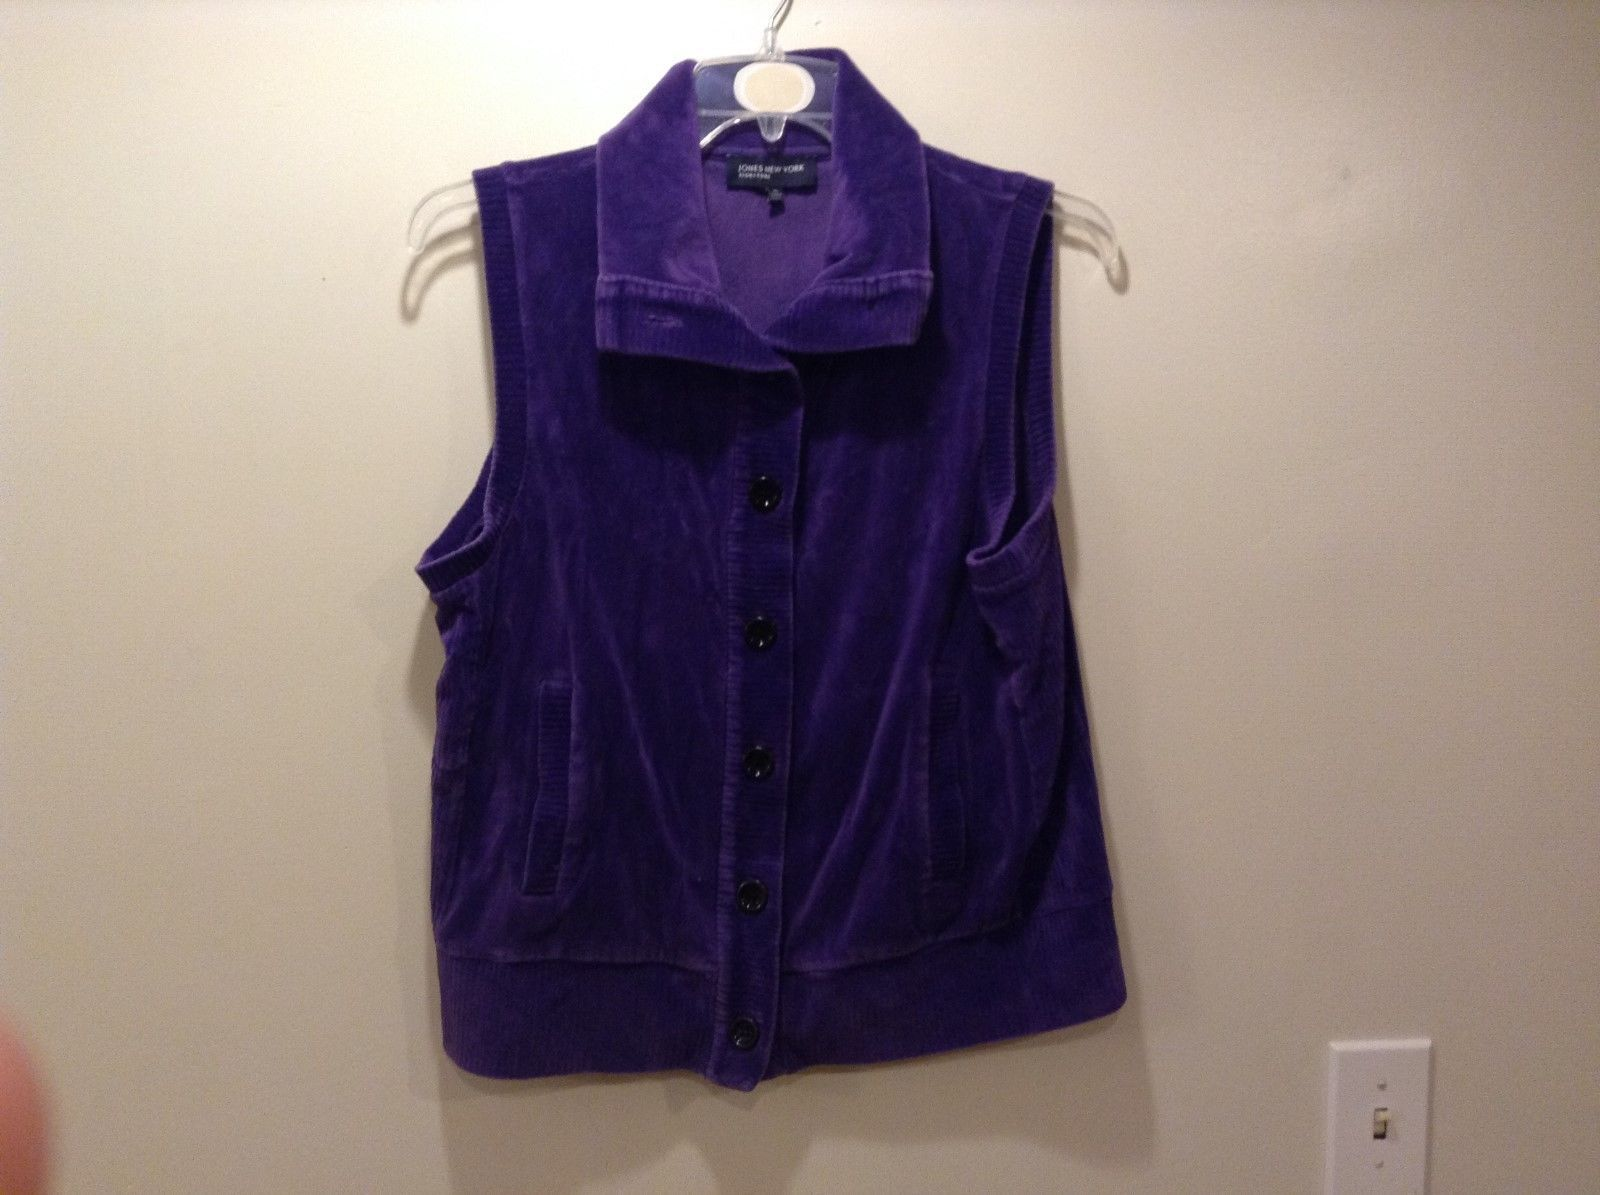 Jones New York Signature Cardigan Style Purple Vest